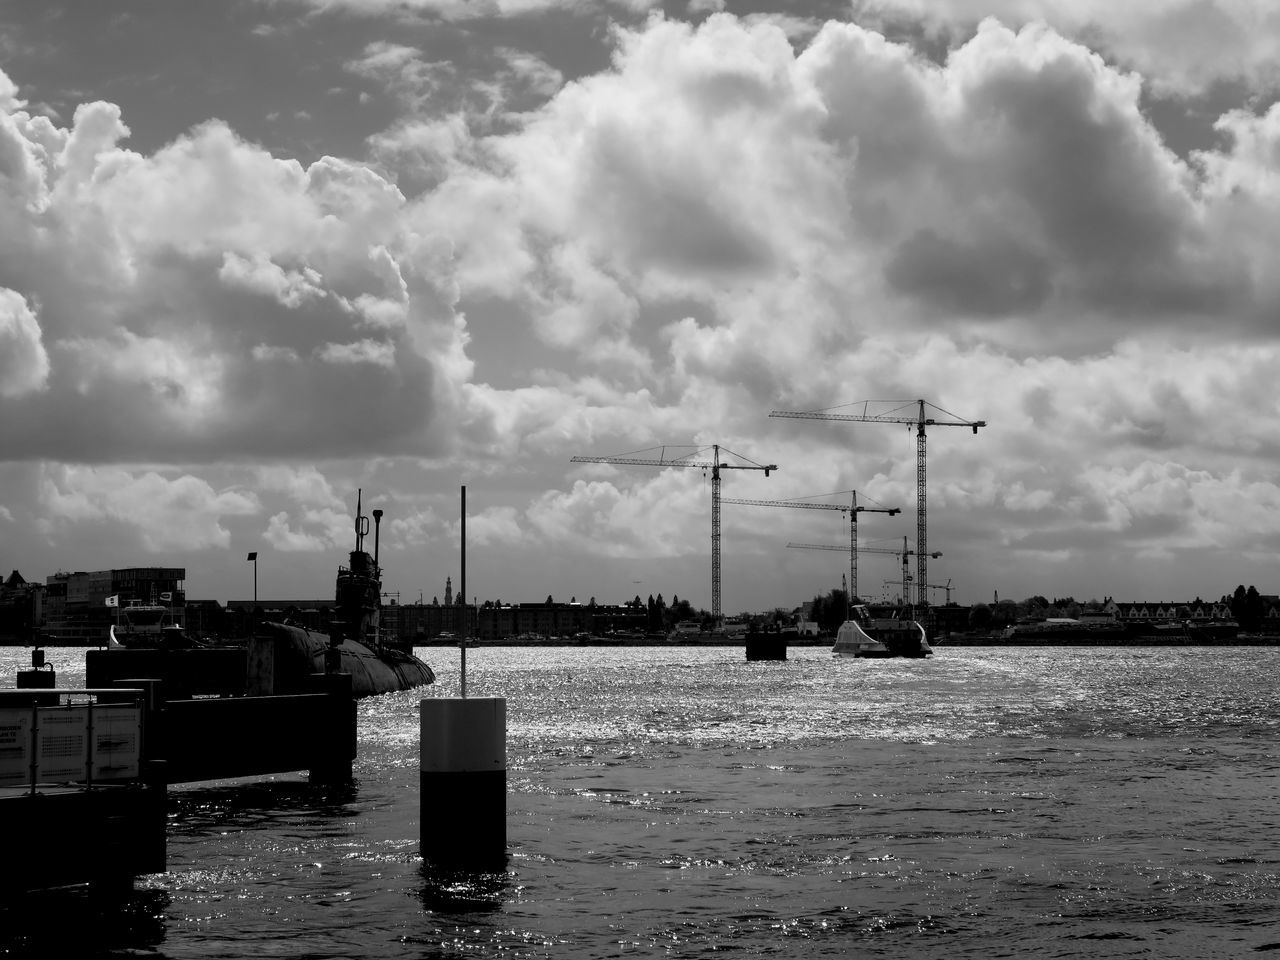 Hollandse wolkenluchten - Dutch skies, in black and white Amsterdam B&w Black And White Black And White Photography Cloud - Sky Clouds And Sky Construction Crane Crane - Construction Machinery Day Dutch Skies Ferry Ferryboat Harbor Ij Nautical Vessel No People Outdoors Pont River View Riverside Sea Sky Skyline Submarine Water